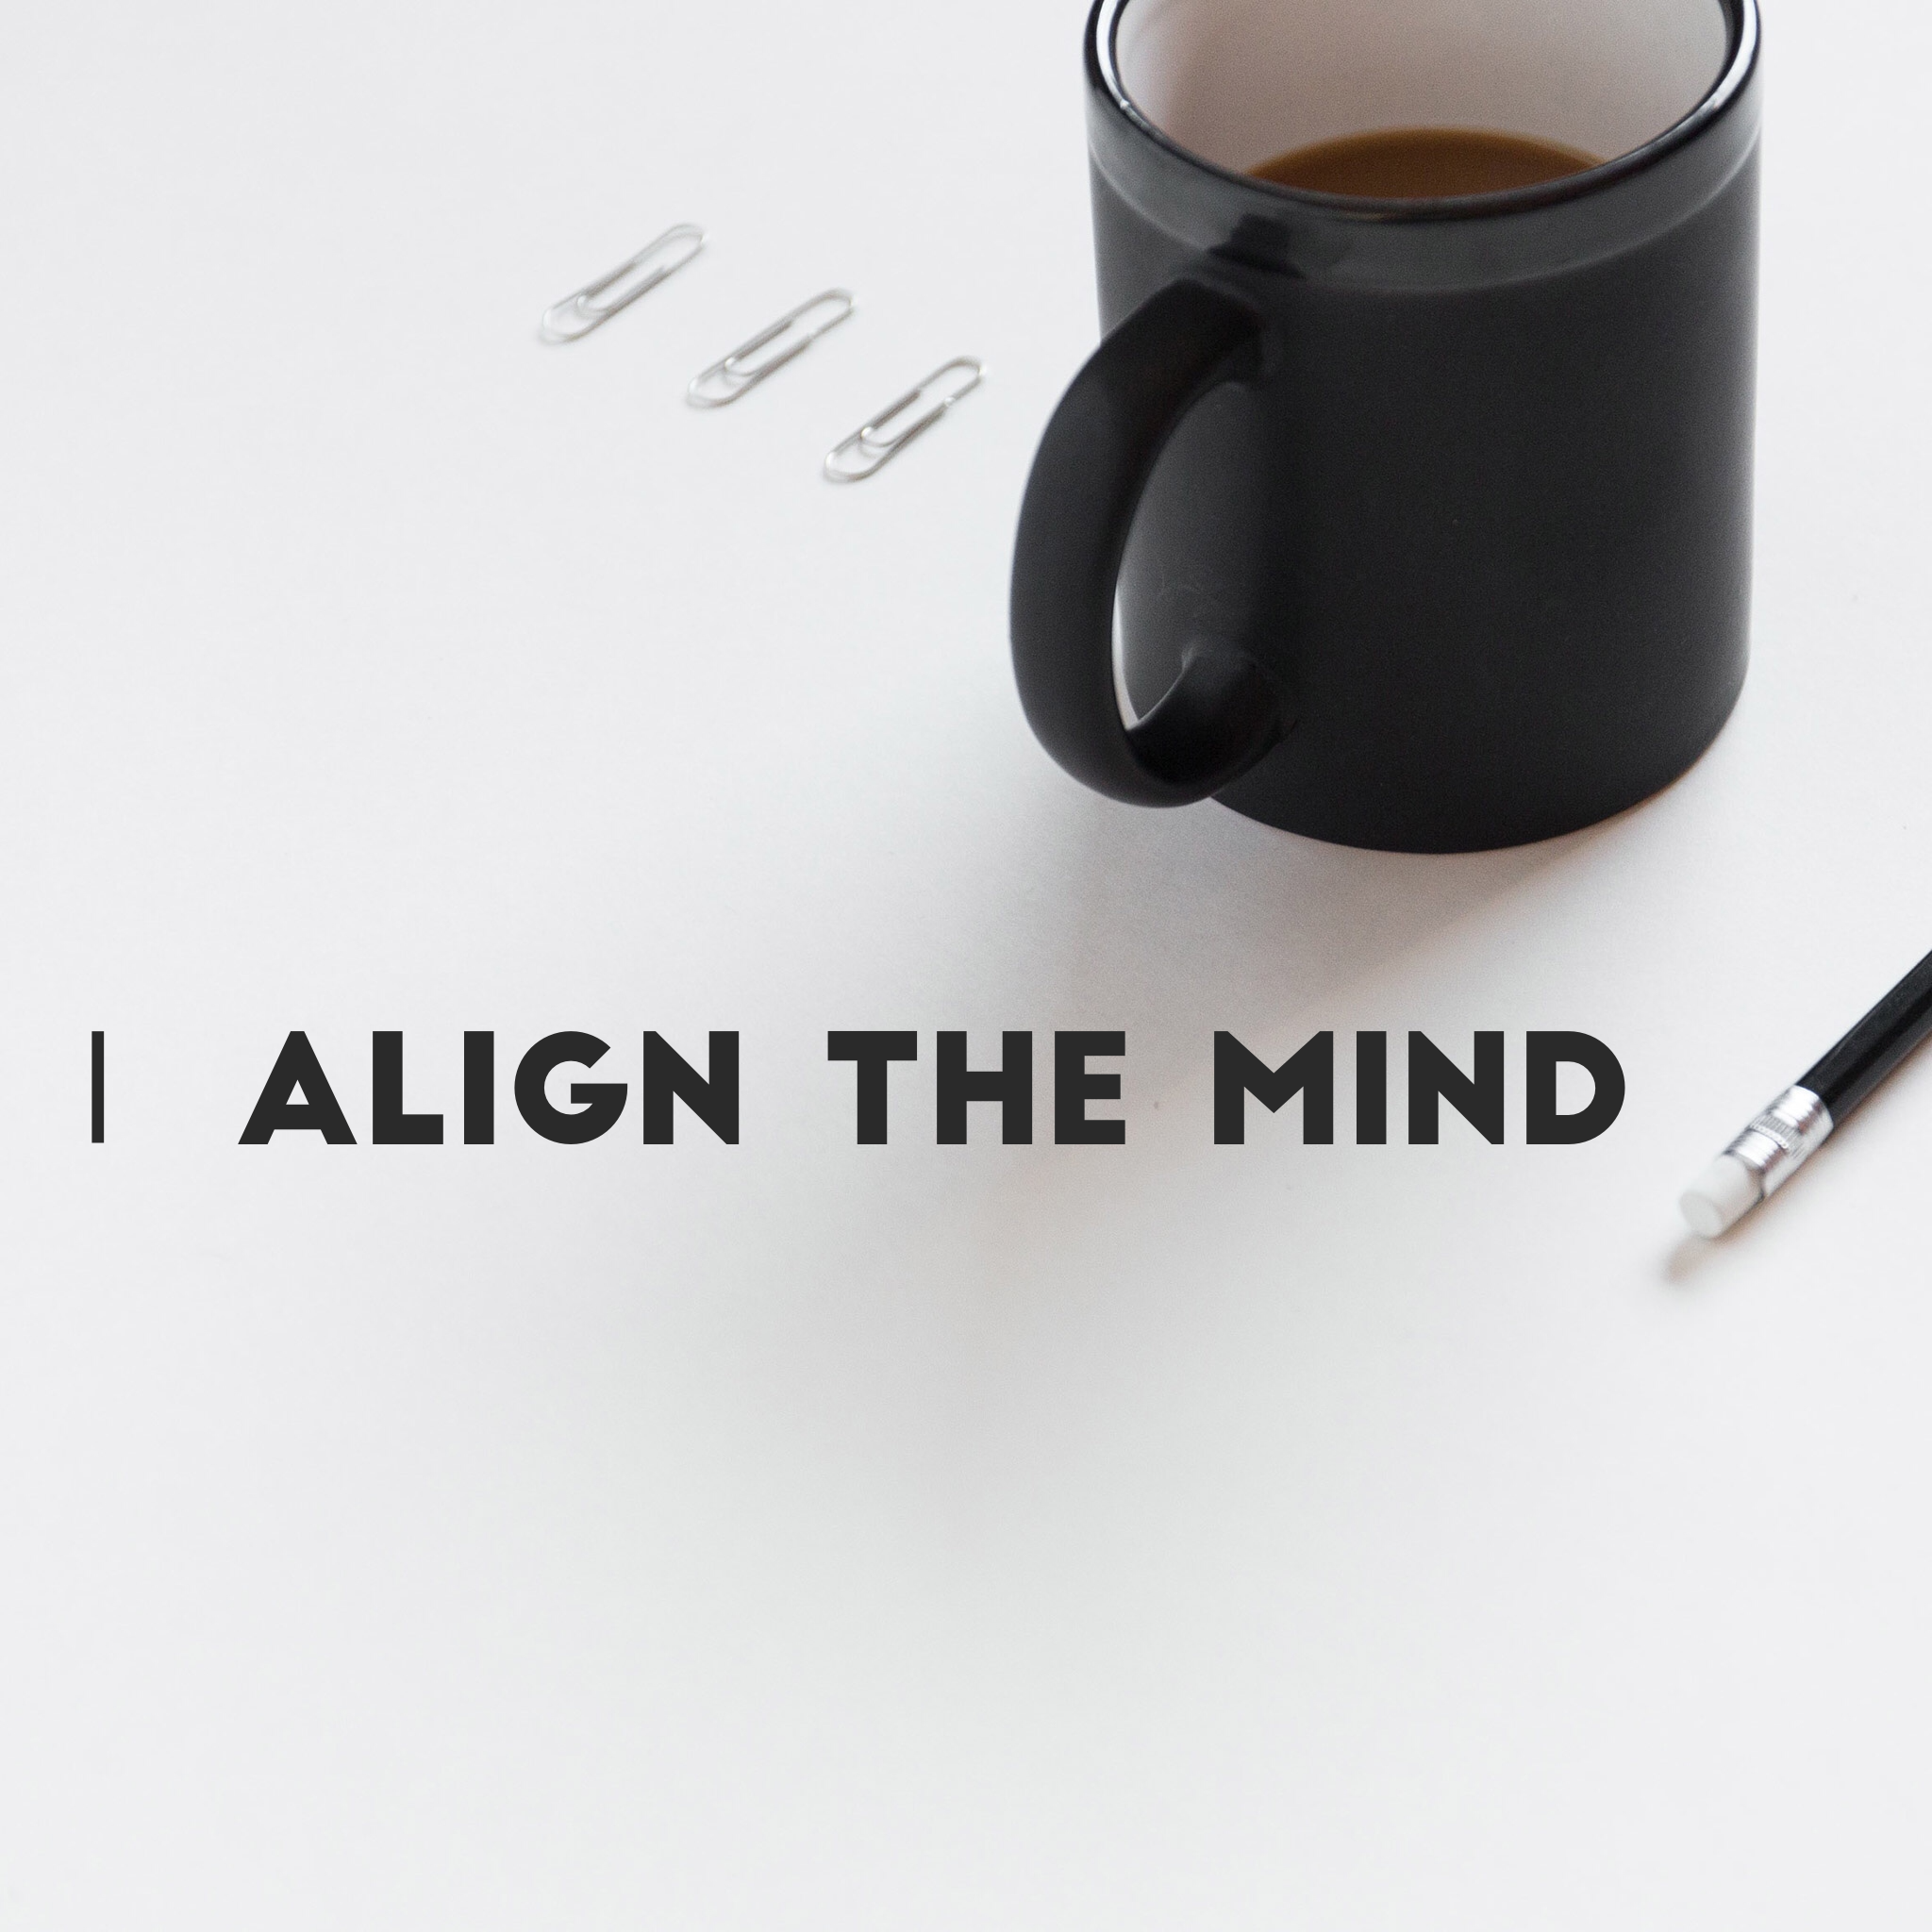 Align the Mind